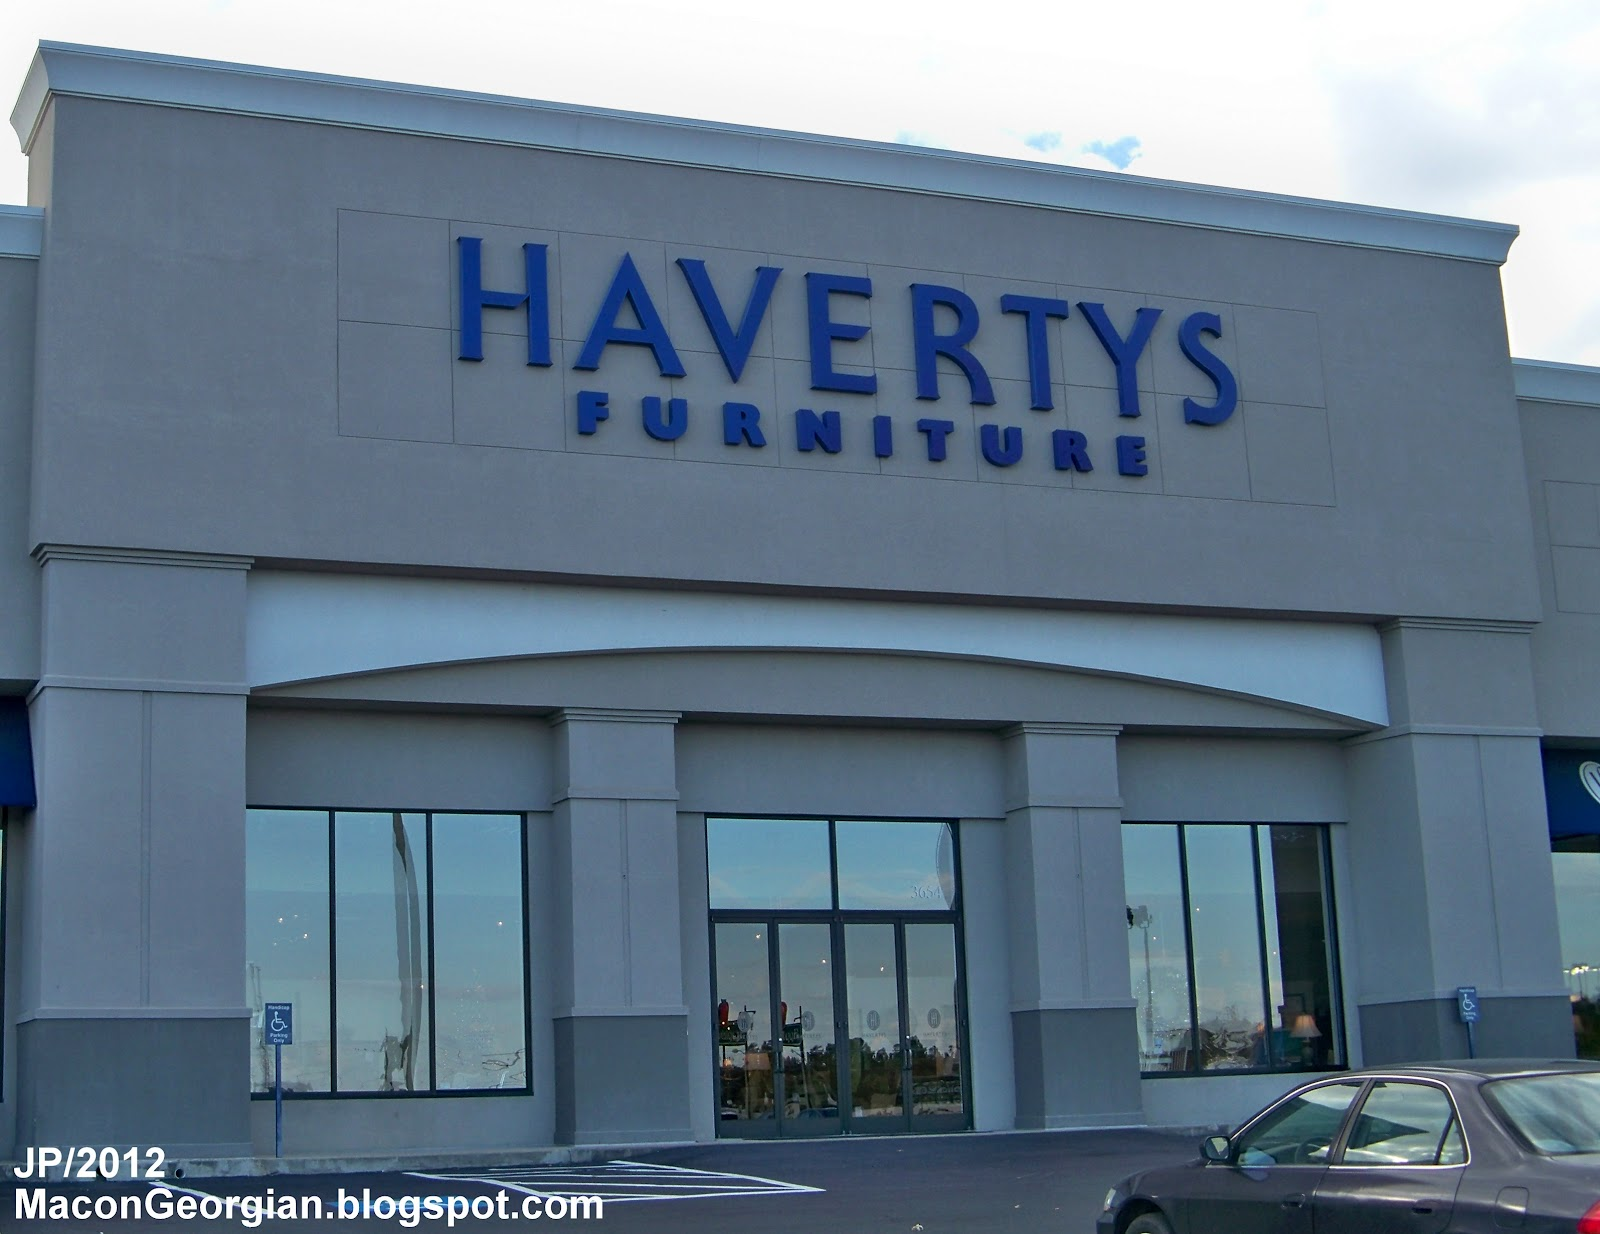 HAVERTYS FURNITURE STORE MACON GA. Eisenhower Parkway, Havertys Furniture  Showroom Store Bibb County Macon Georgia